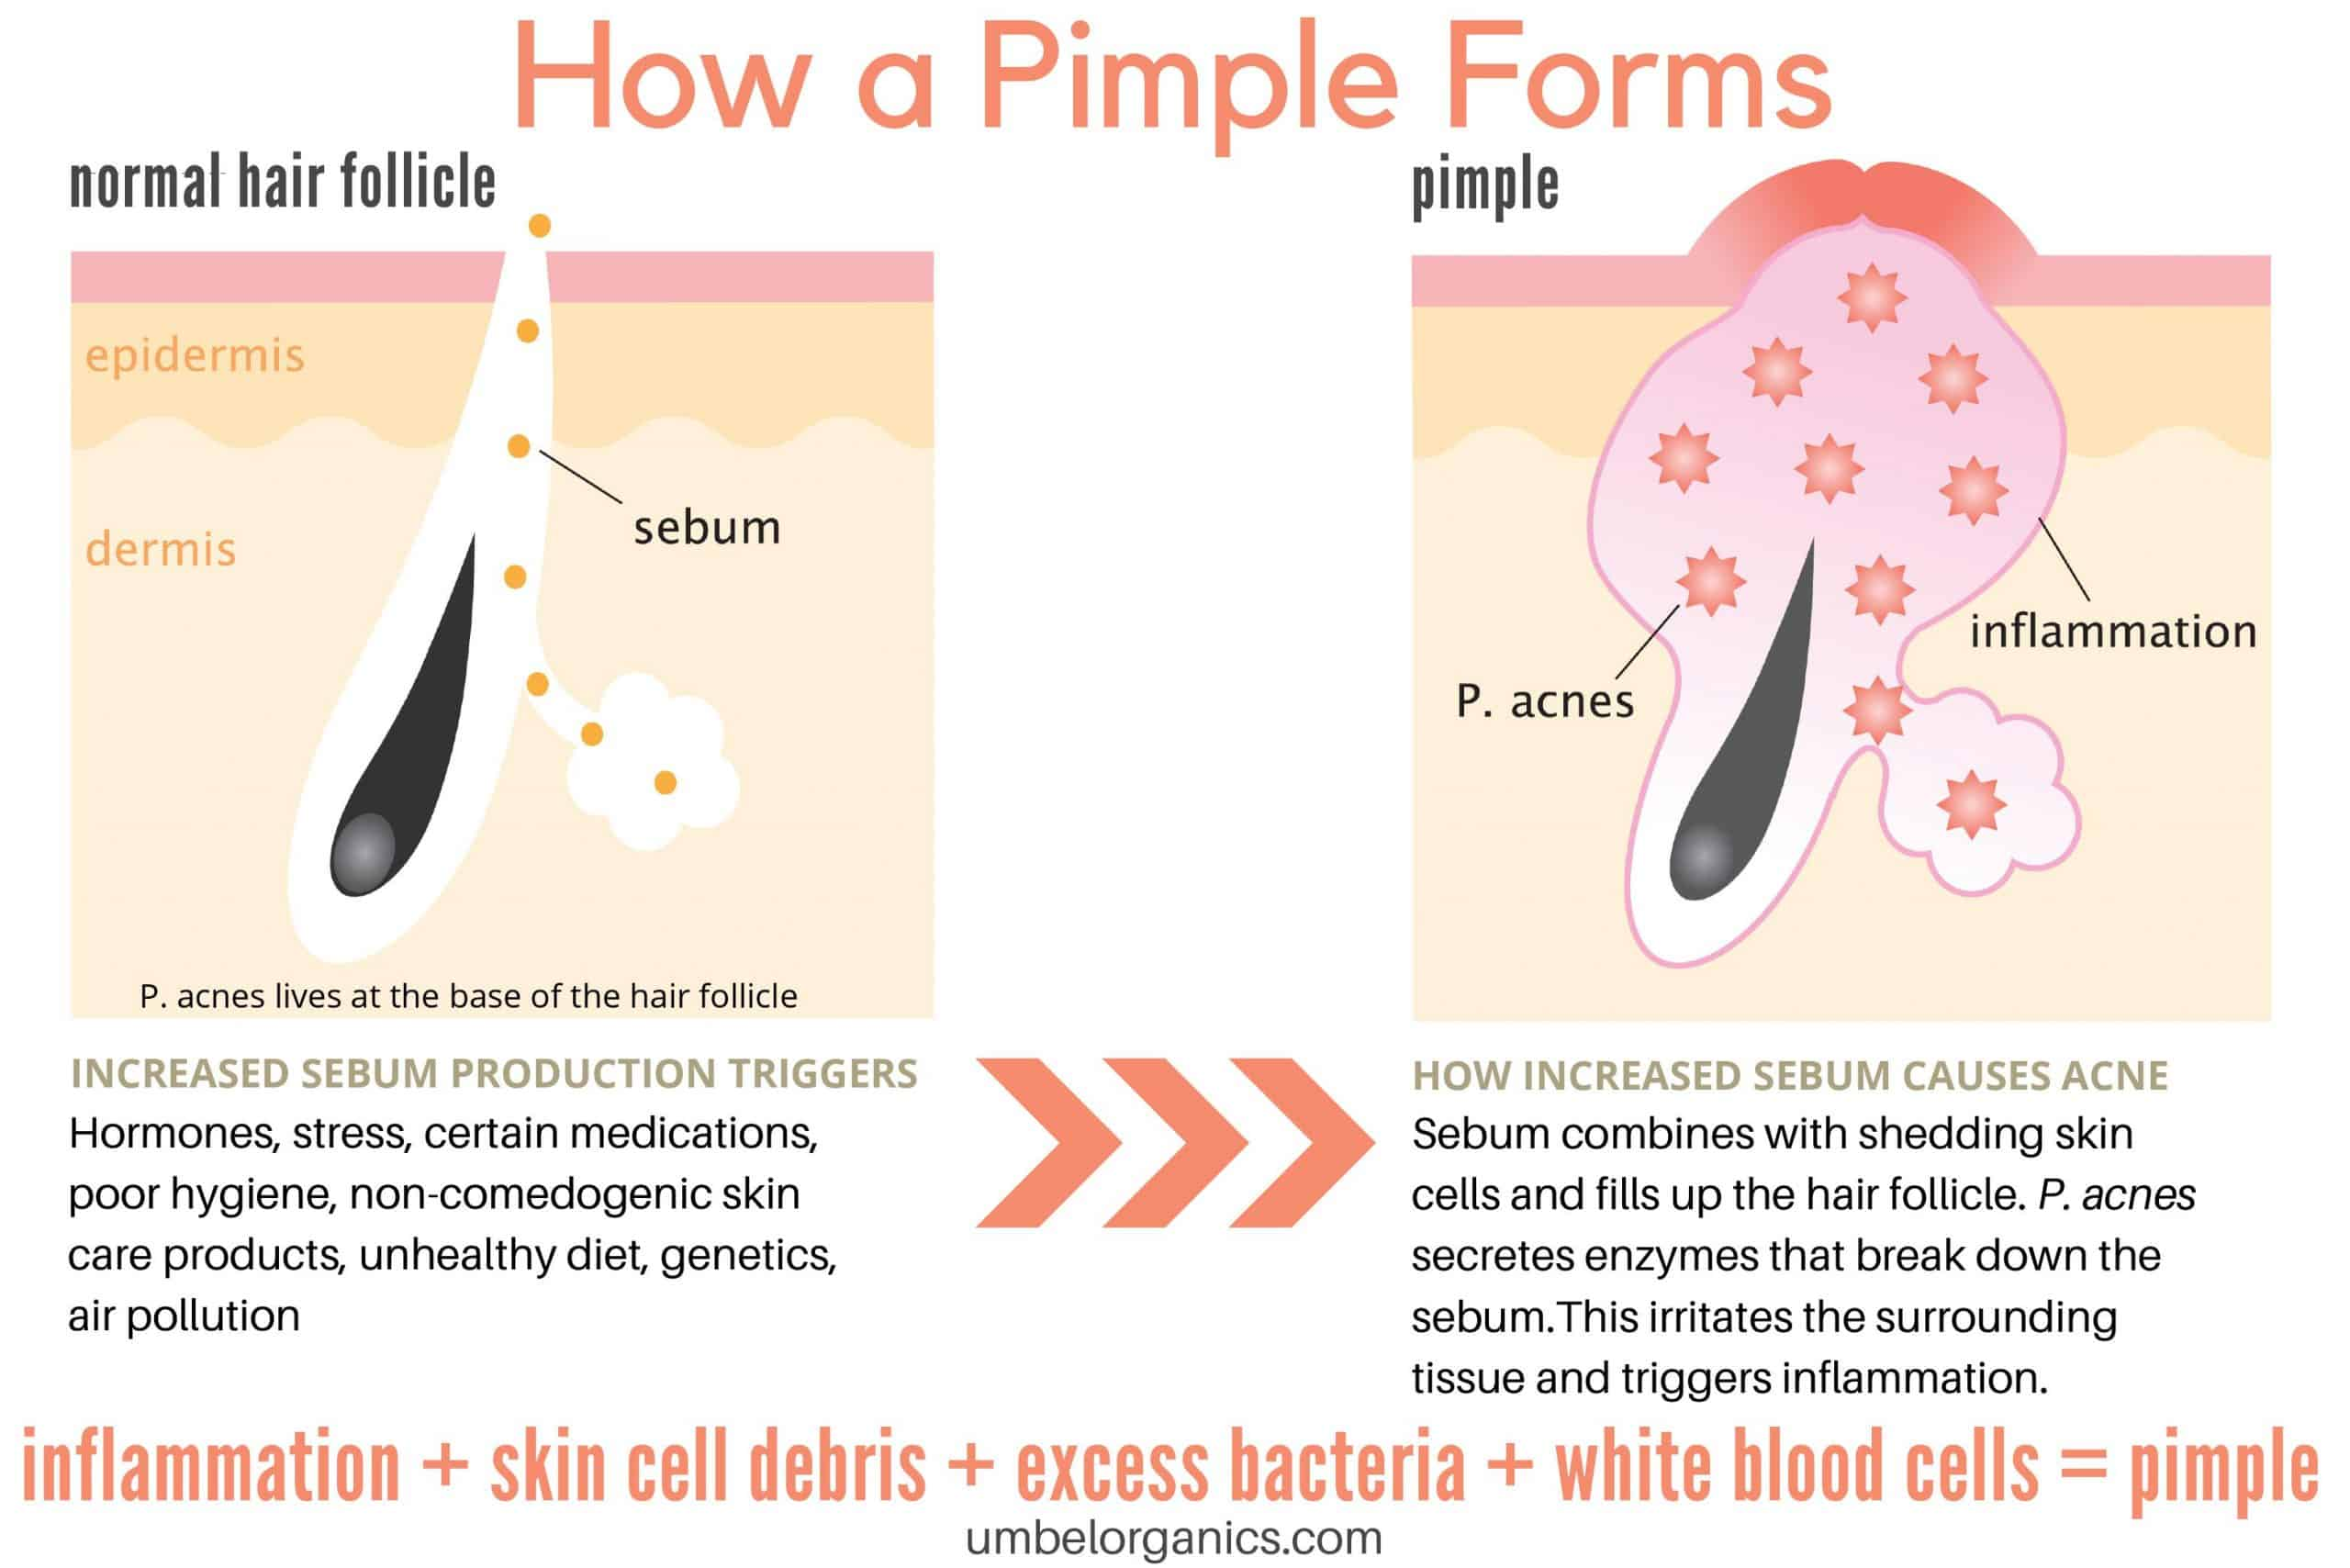 Infographic showing how a pimple forms